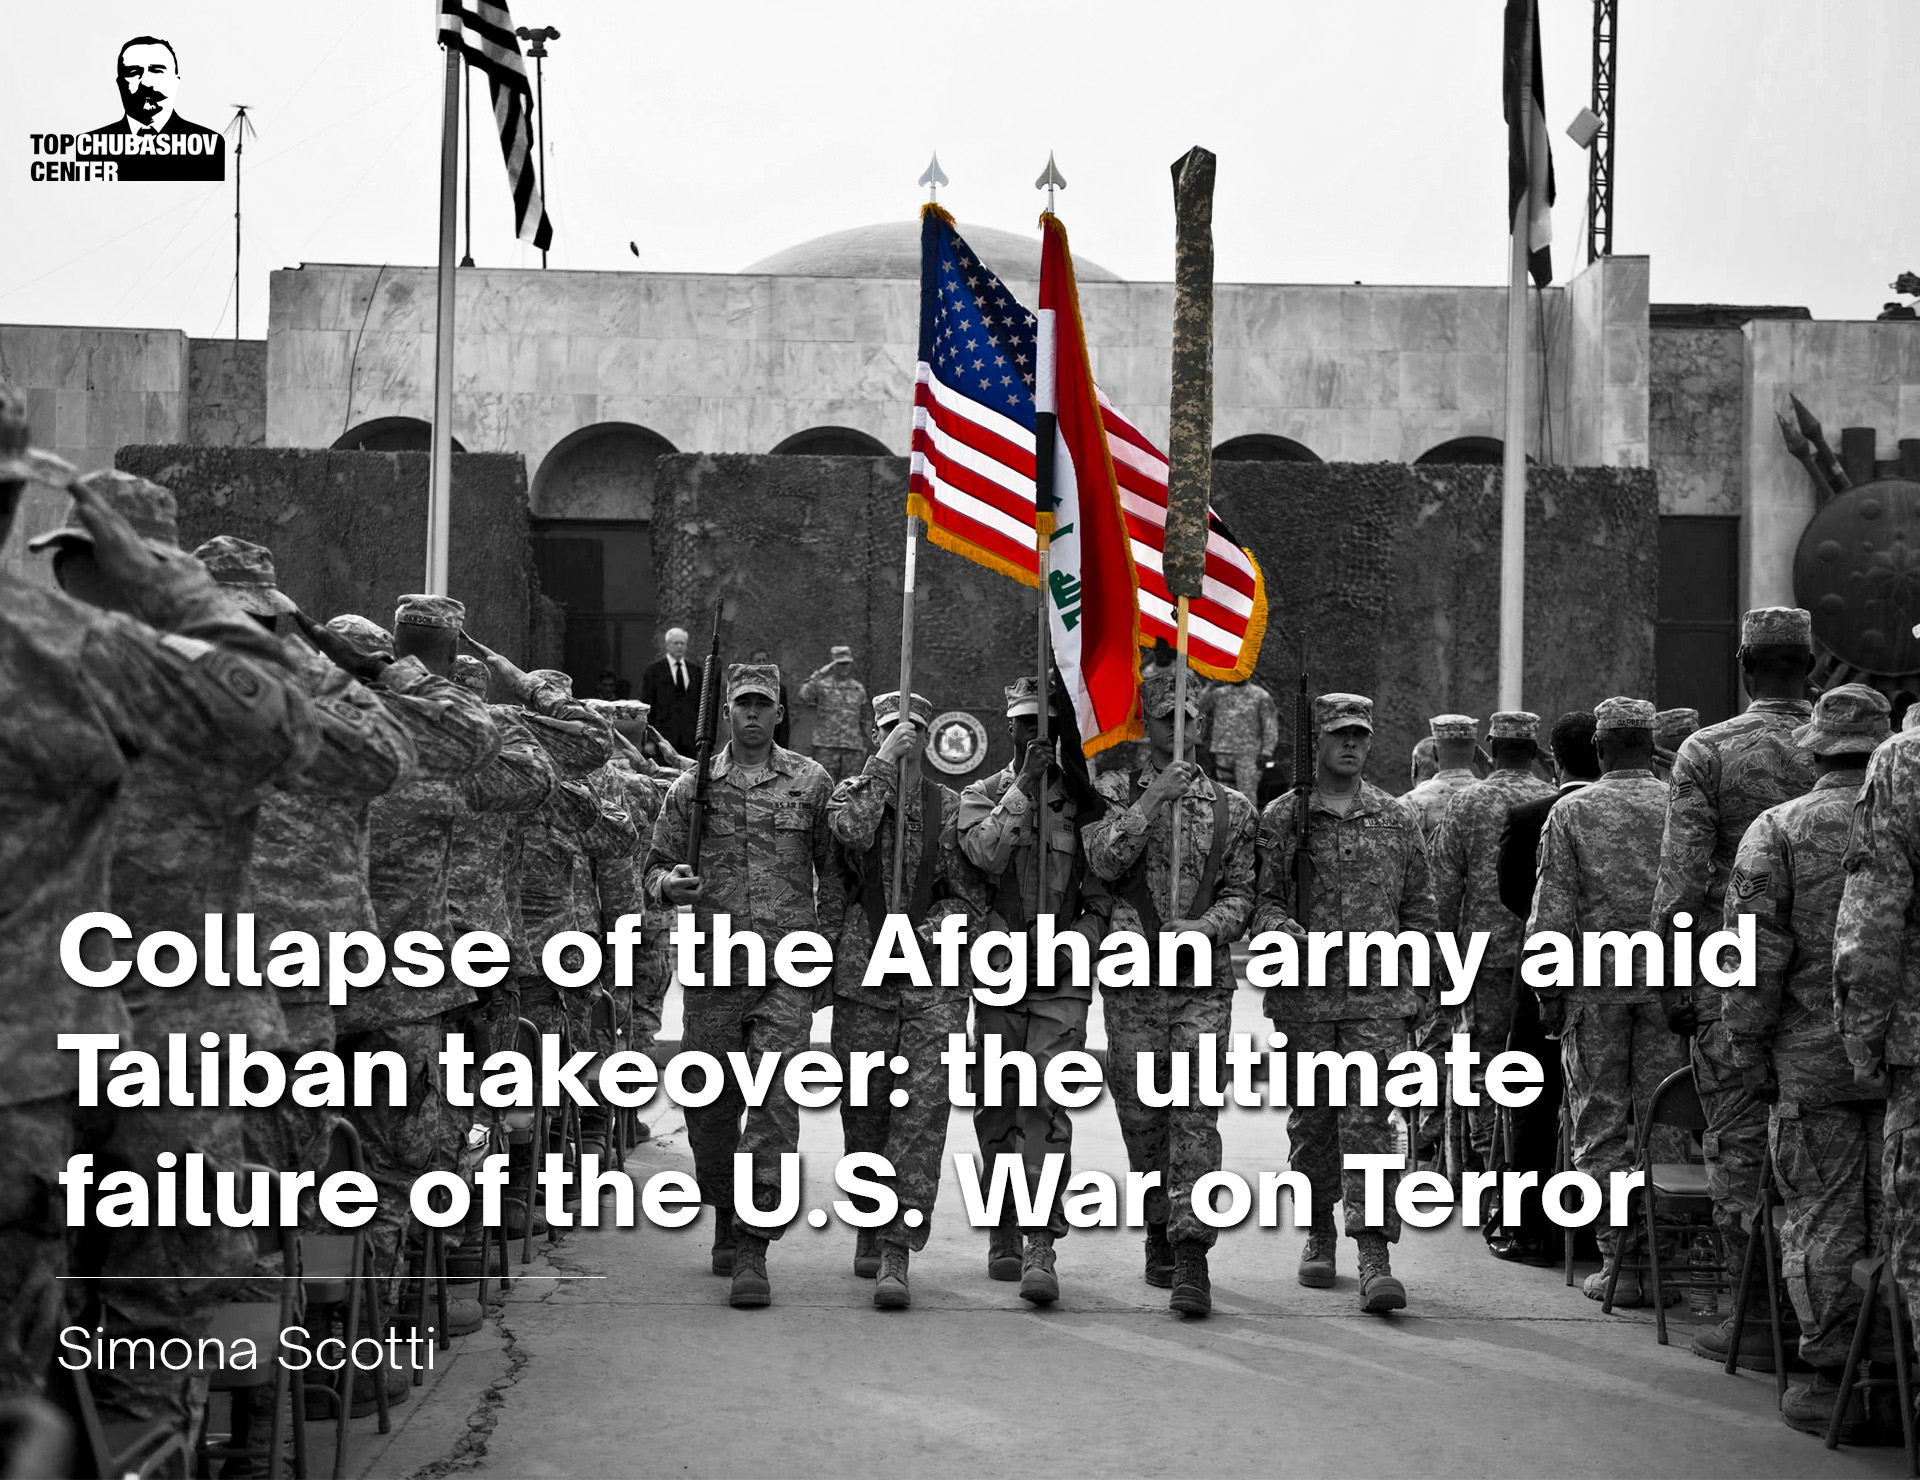 Collapse of the Afghan army amid Taliban takeover:The ultimate failure of the U.S. War on Terror